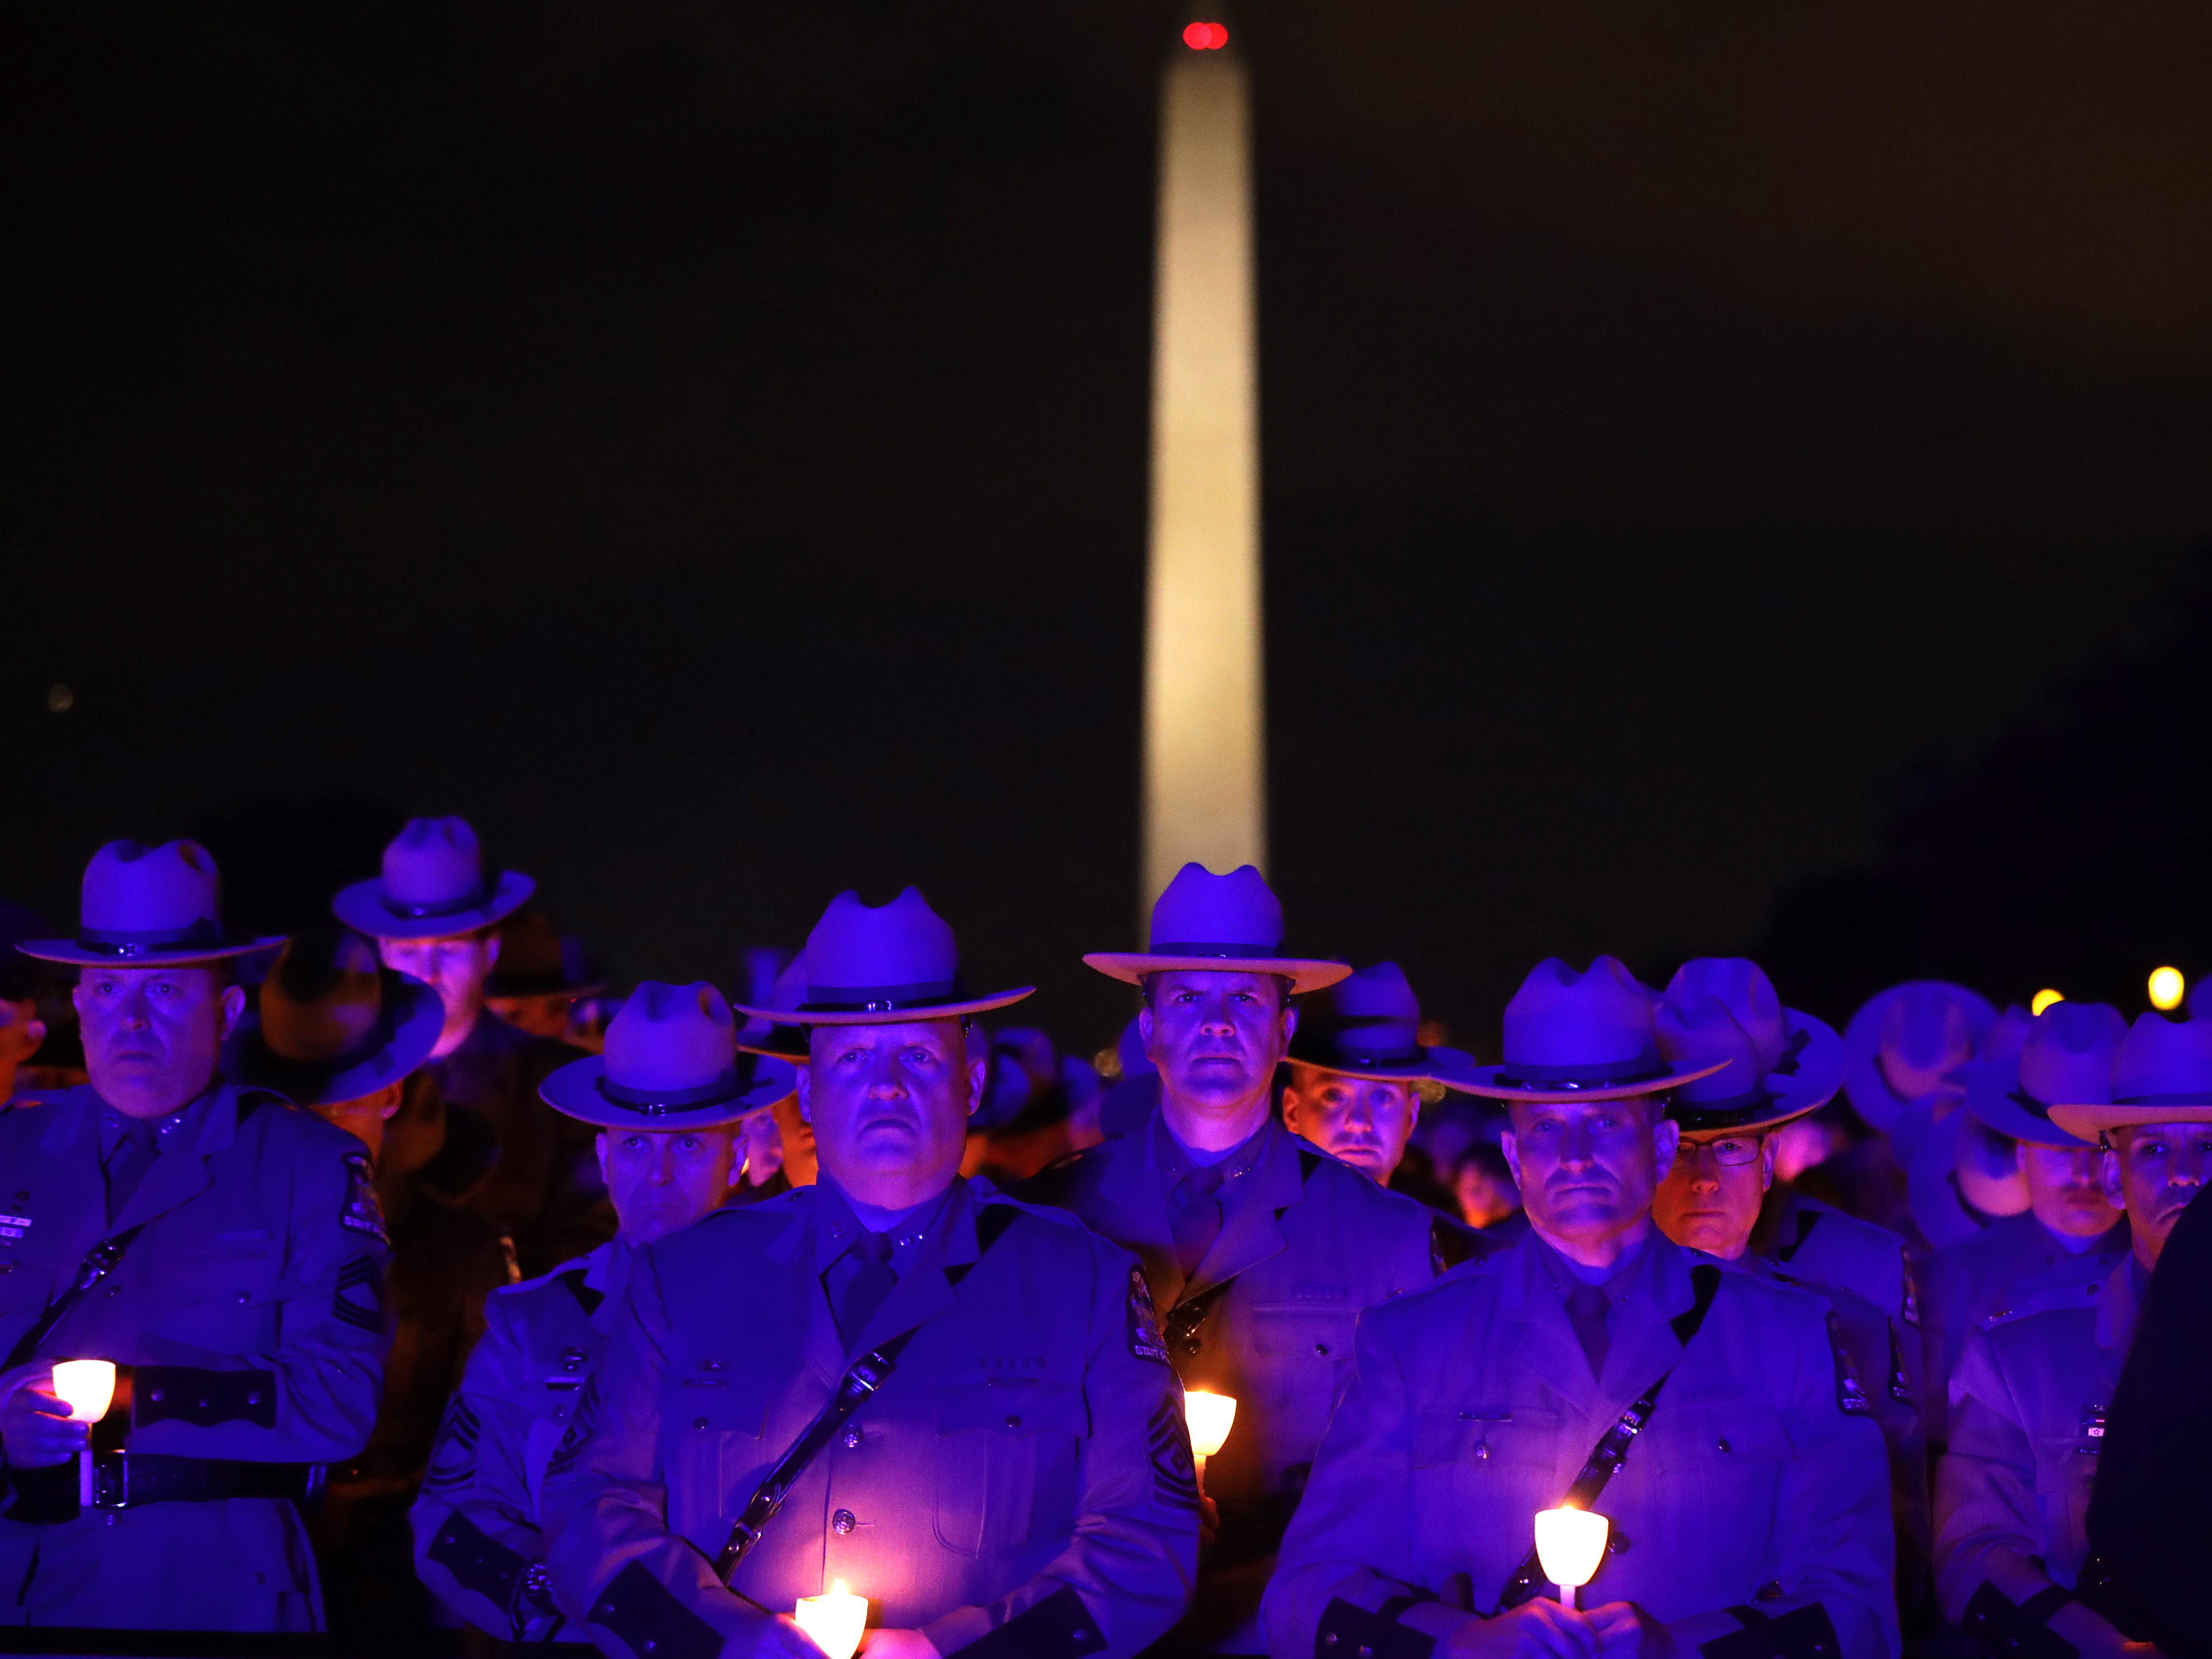 Thousands of law enforcement officers and their family and supporters gather for the National Police Week 31st Annual Candlelight Vigil on the National Mall May  in Washington, D.C. Police, political leaders and family members of those officers who died in the line of duty gathered on the National Mall to remember and honor them.